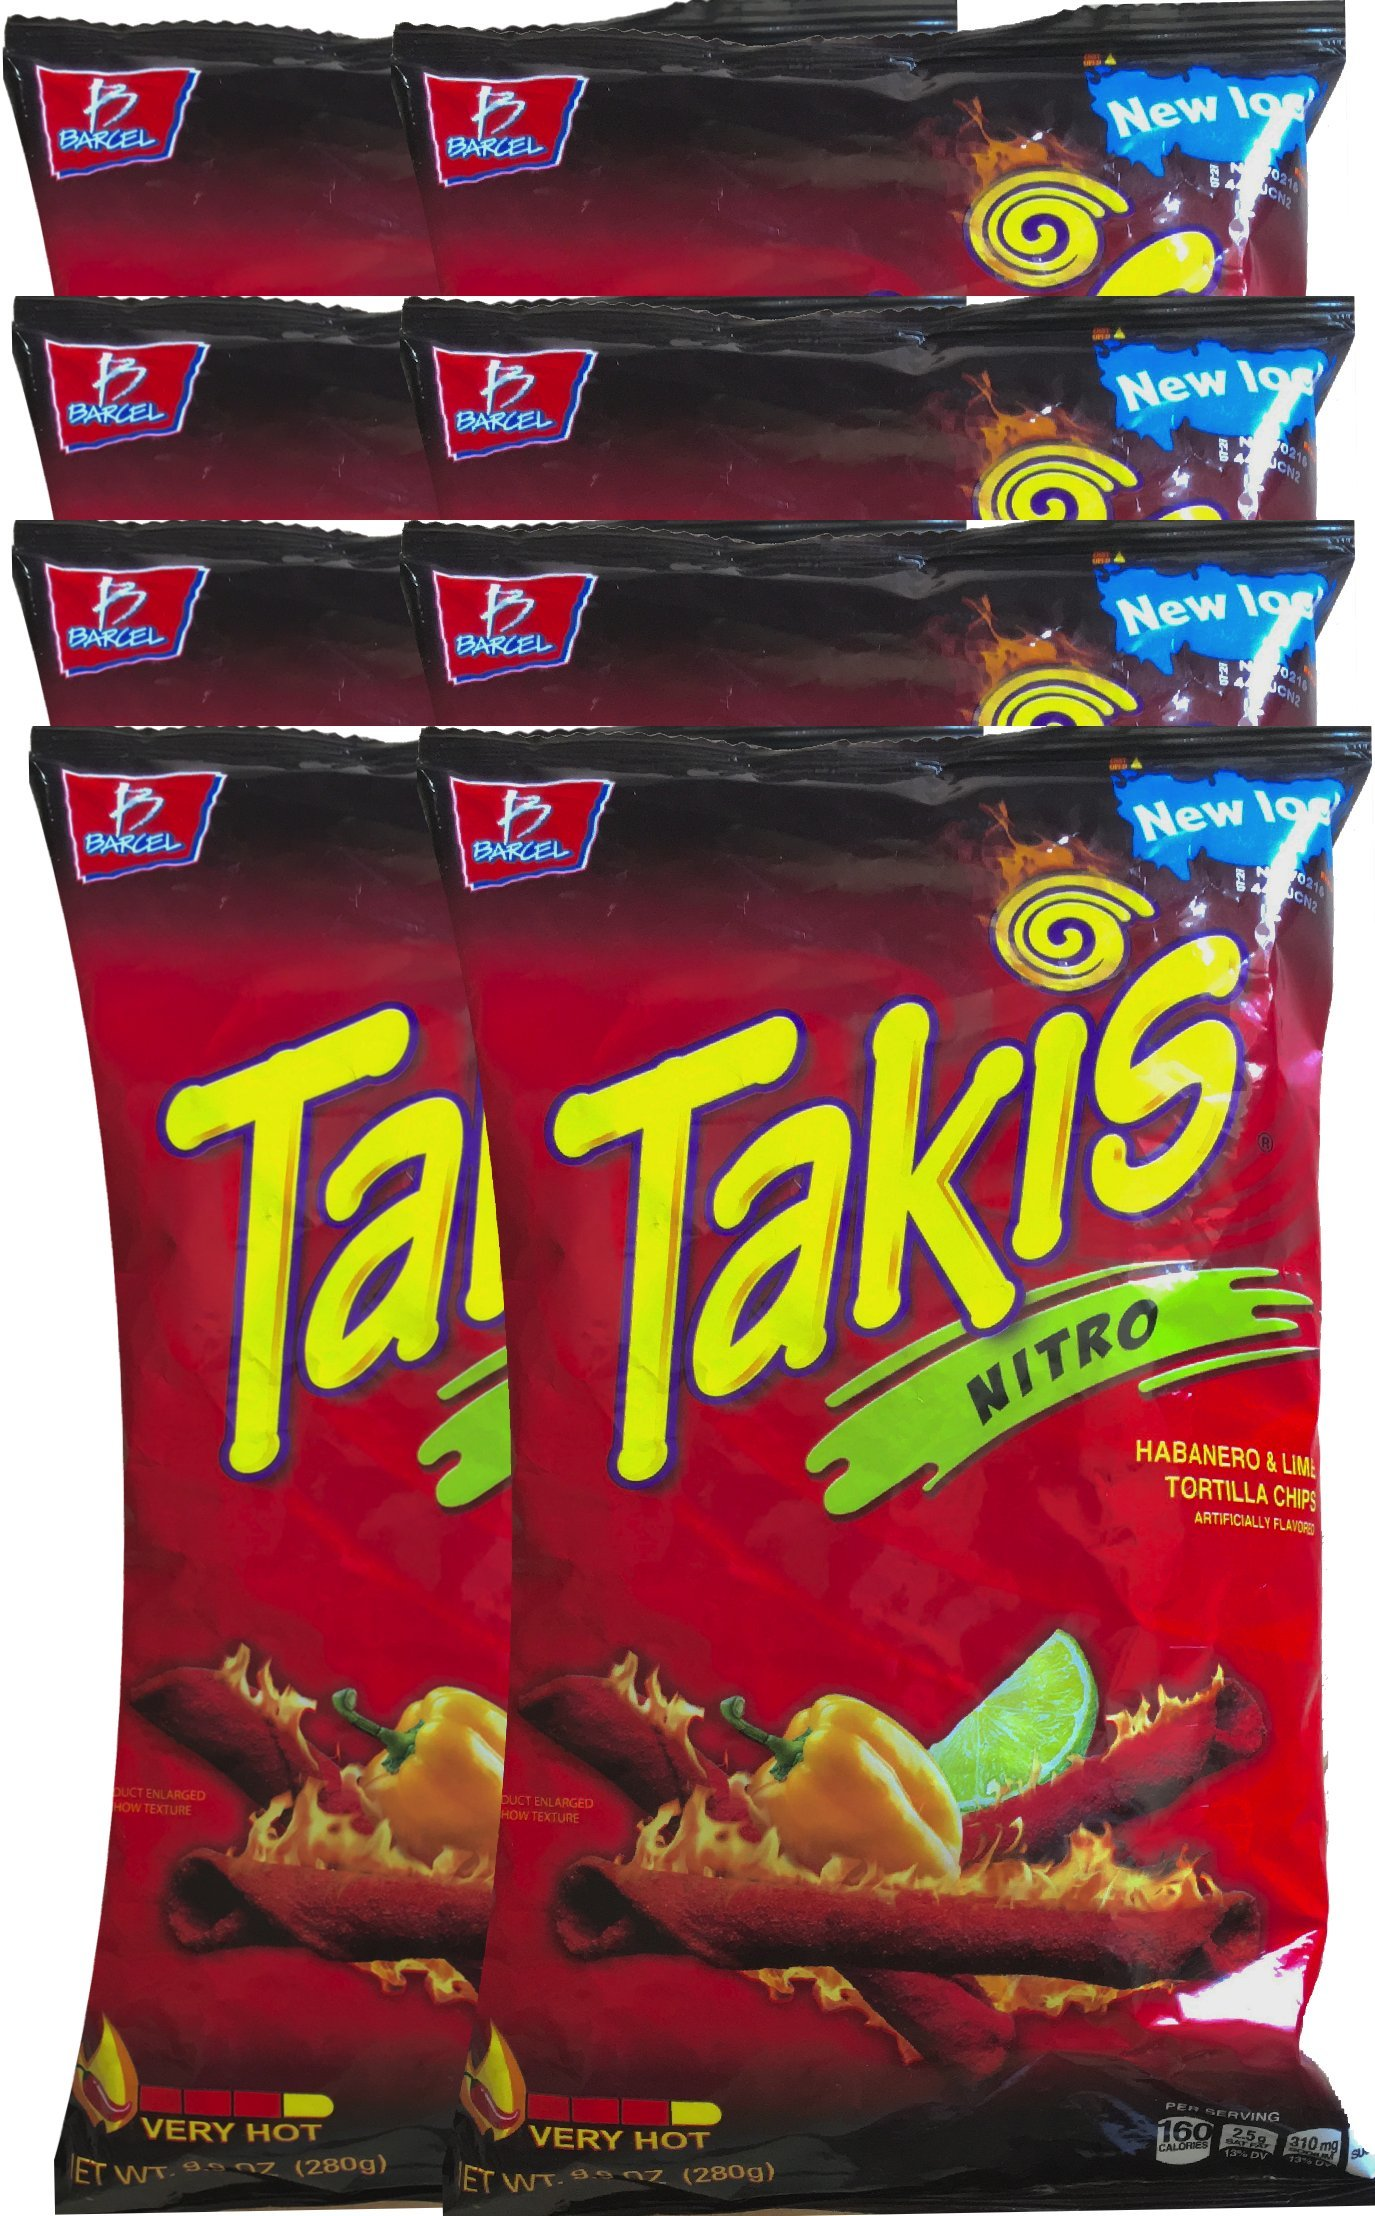 Barcel Takis Nitro Habanero & Lime Tortilla Chips Snack Care Package for College, Military, Sports 9.9 oz bag (8)